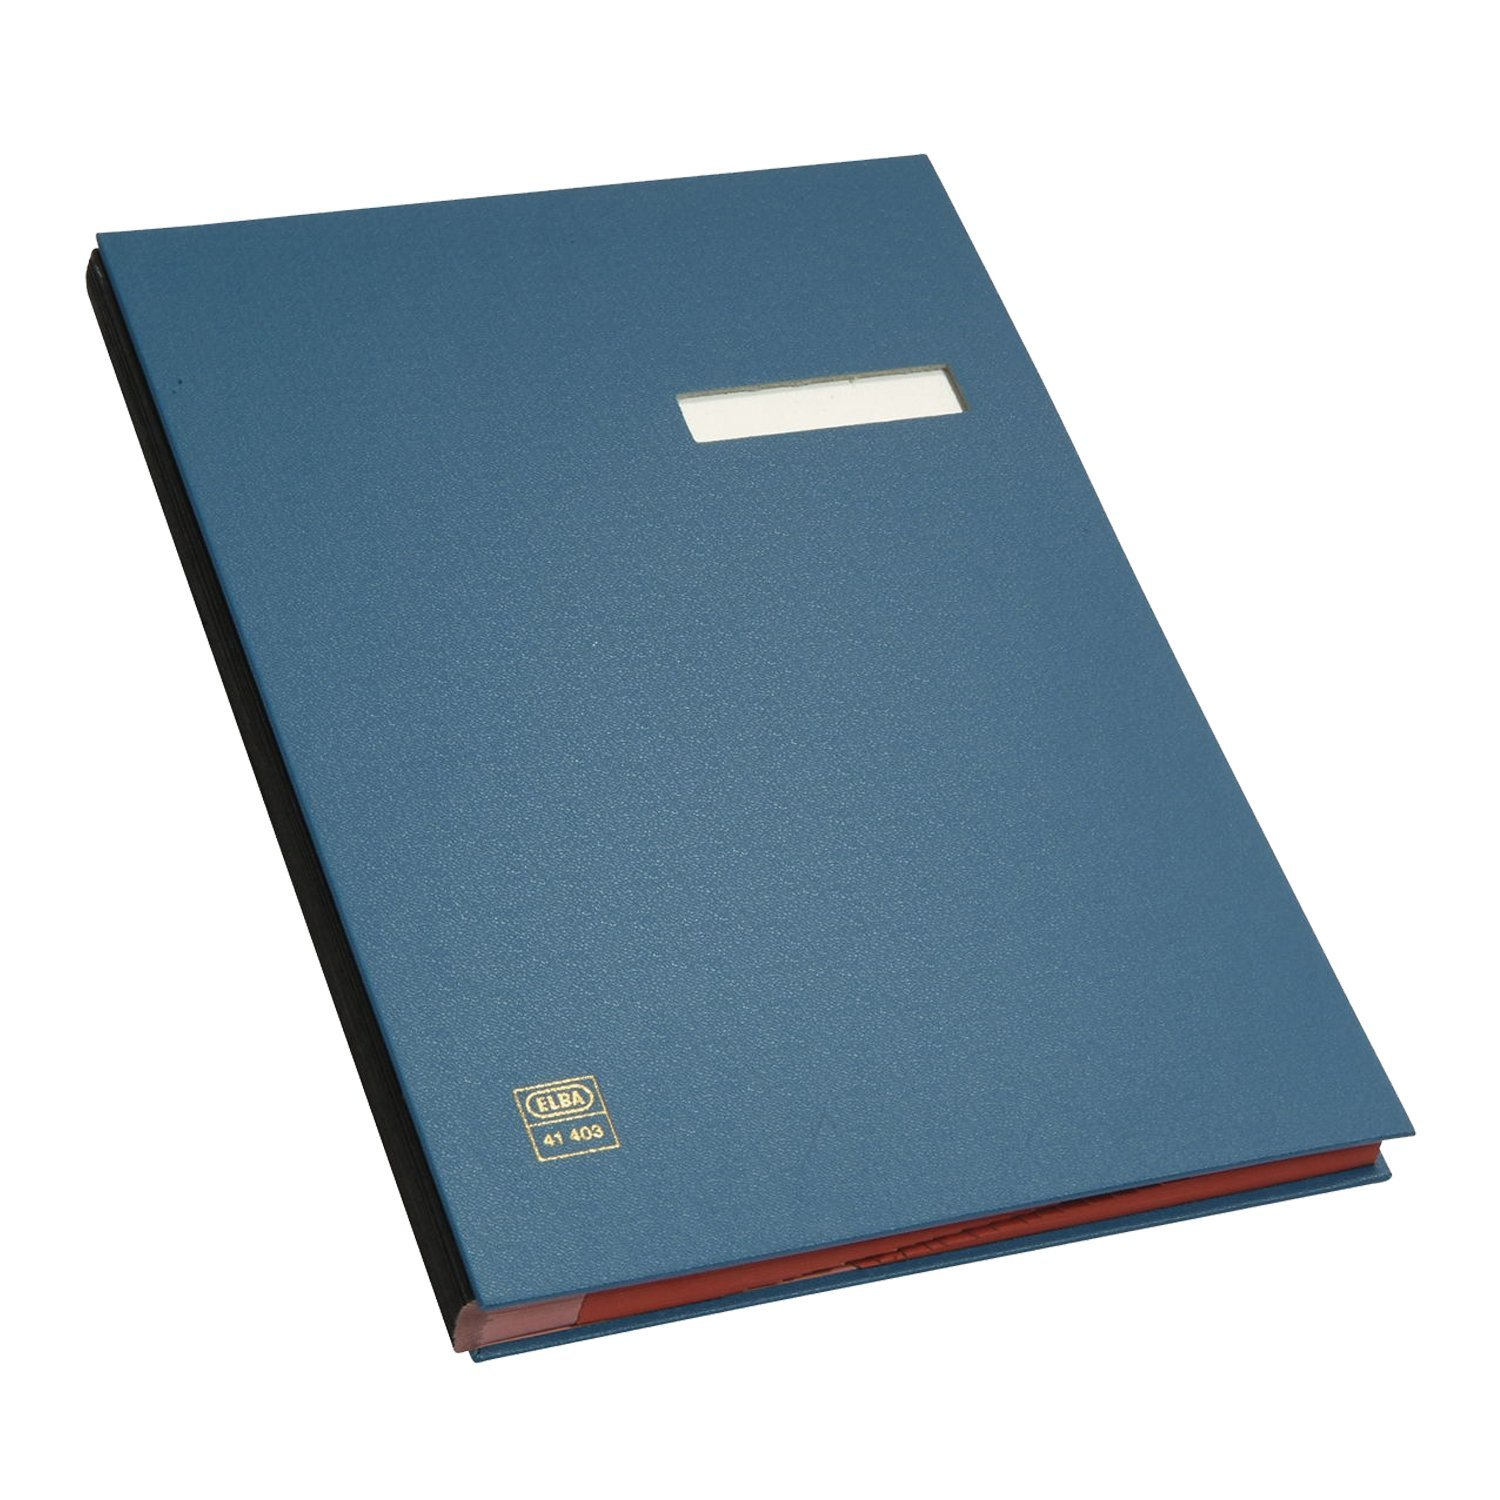 Hardback photo book A4: our best selling photo books